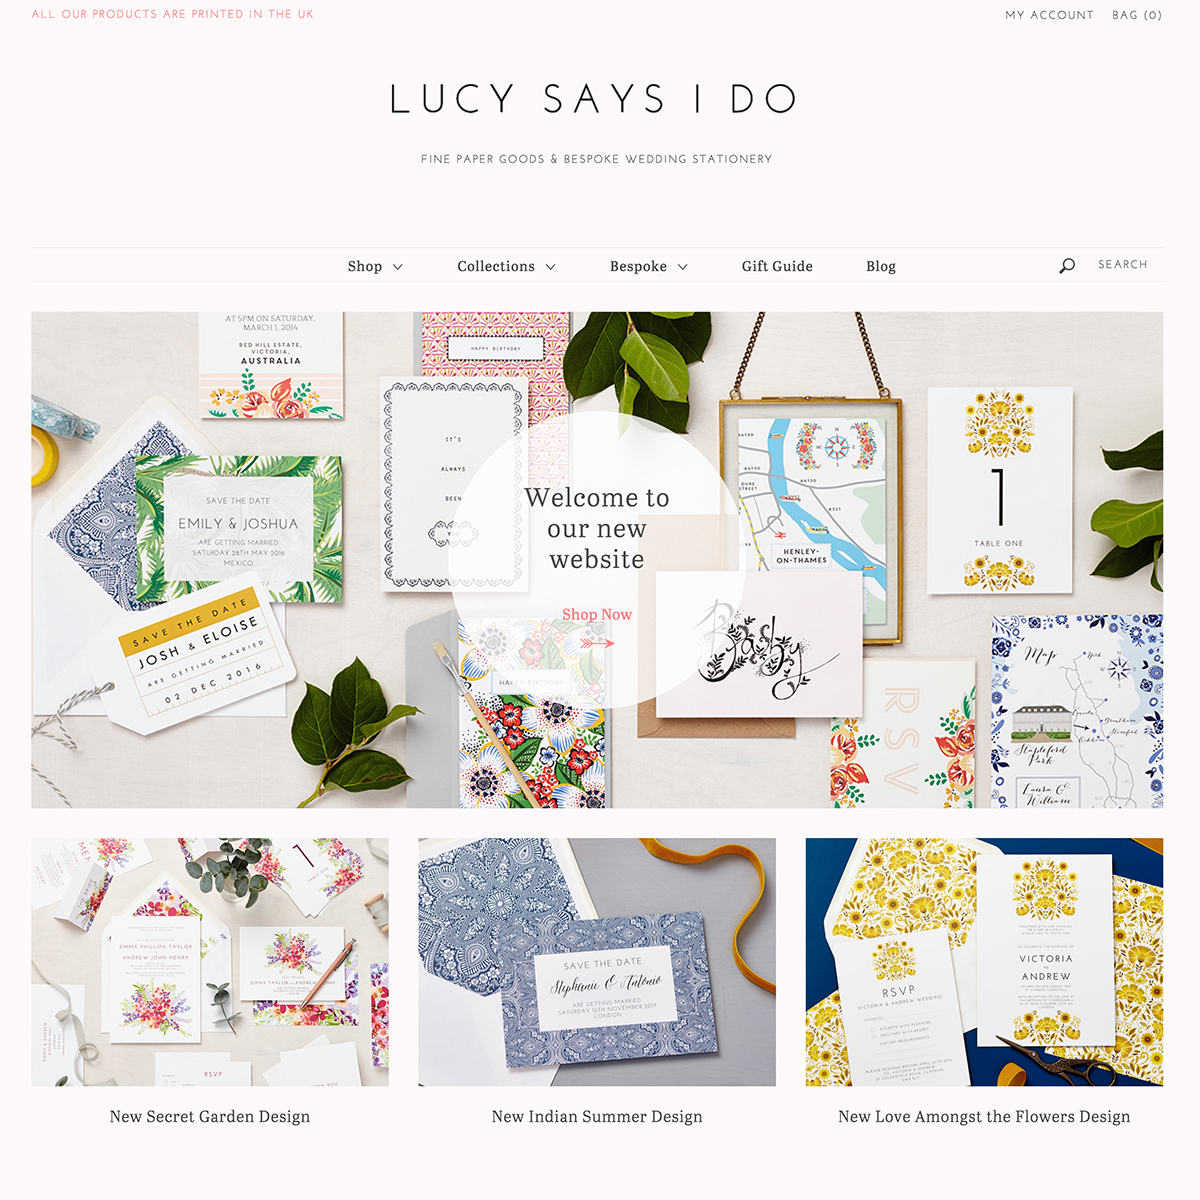 lucy says i do website screenshot